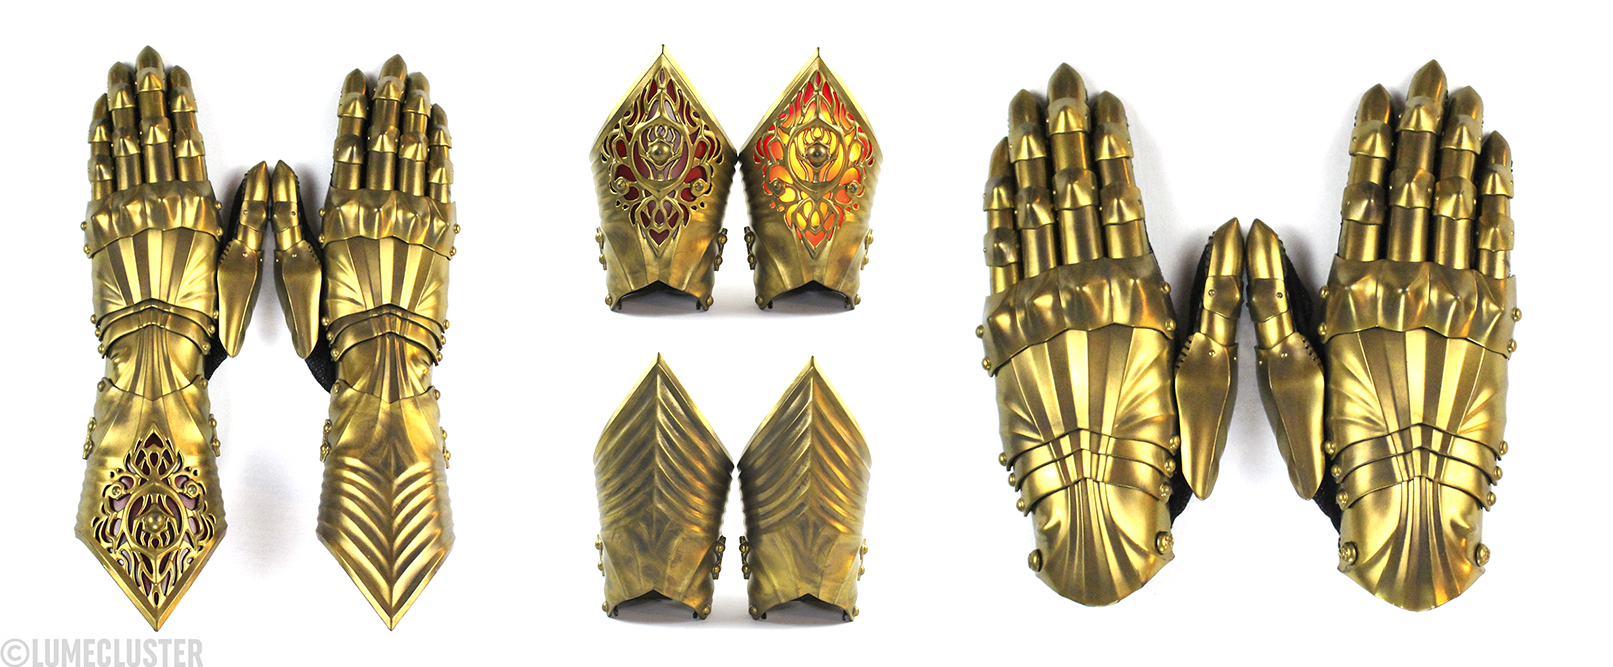 Melissa Ng Throws Down the (3D Printed) Design Gauntlet